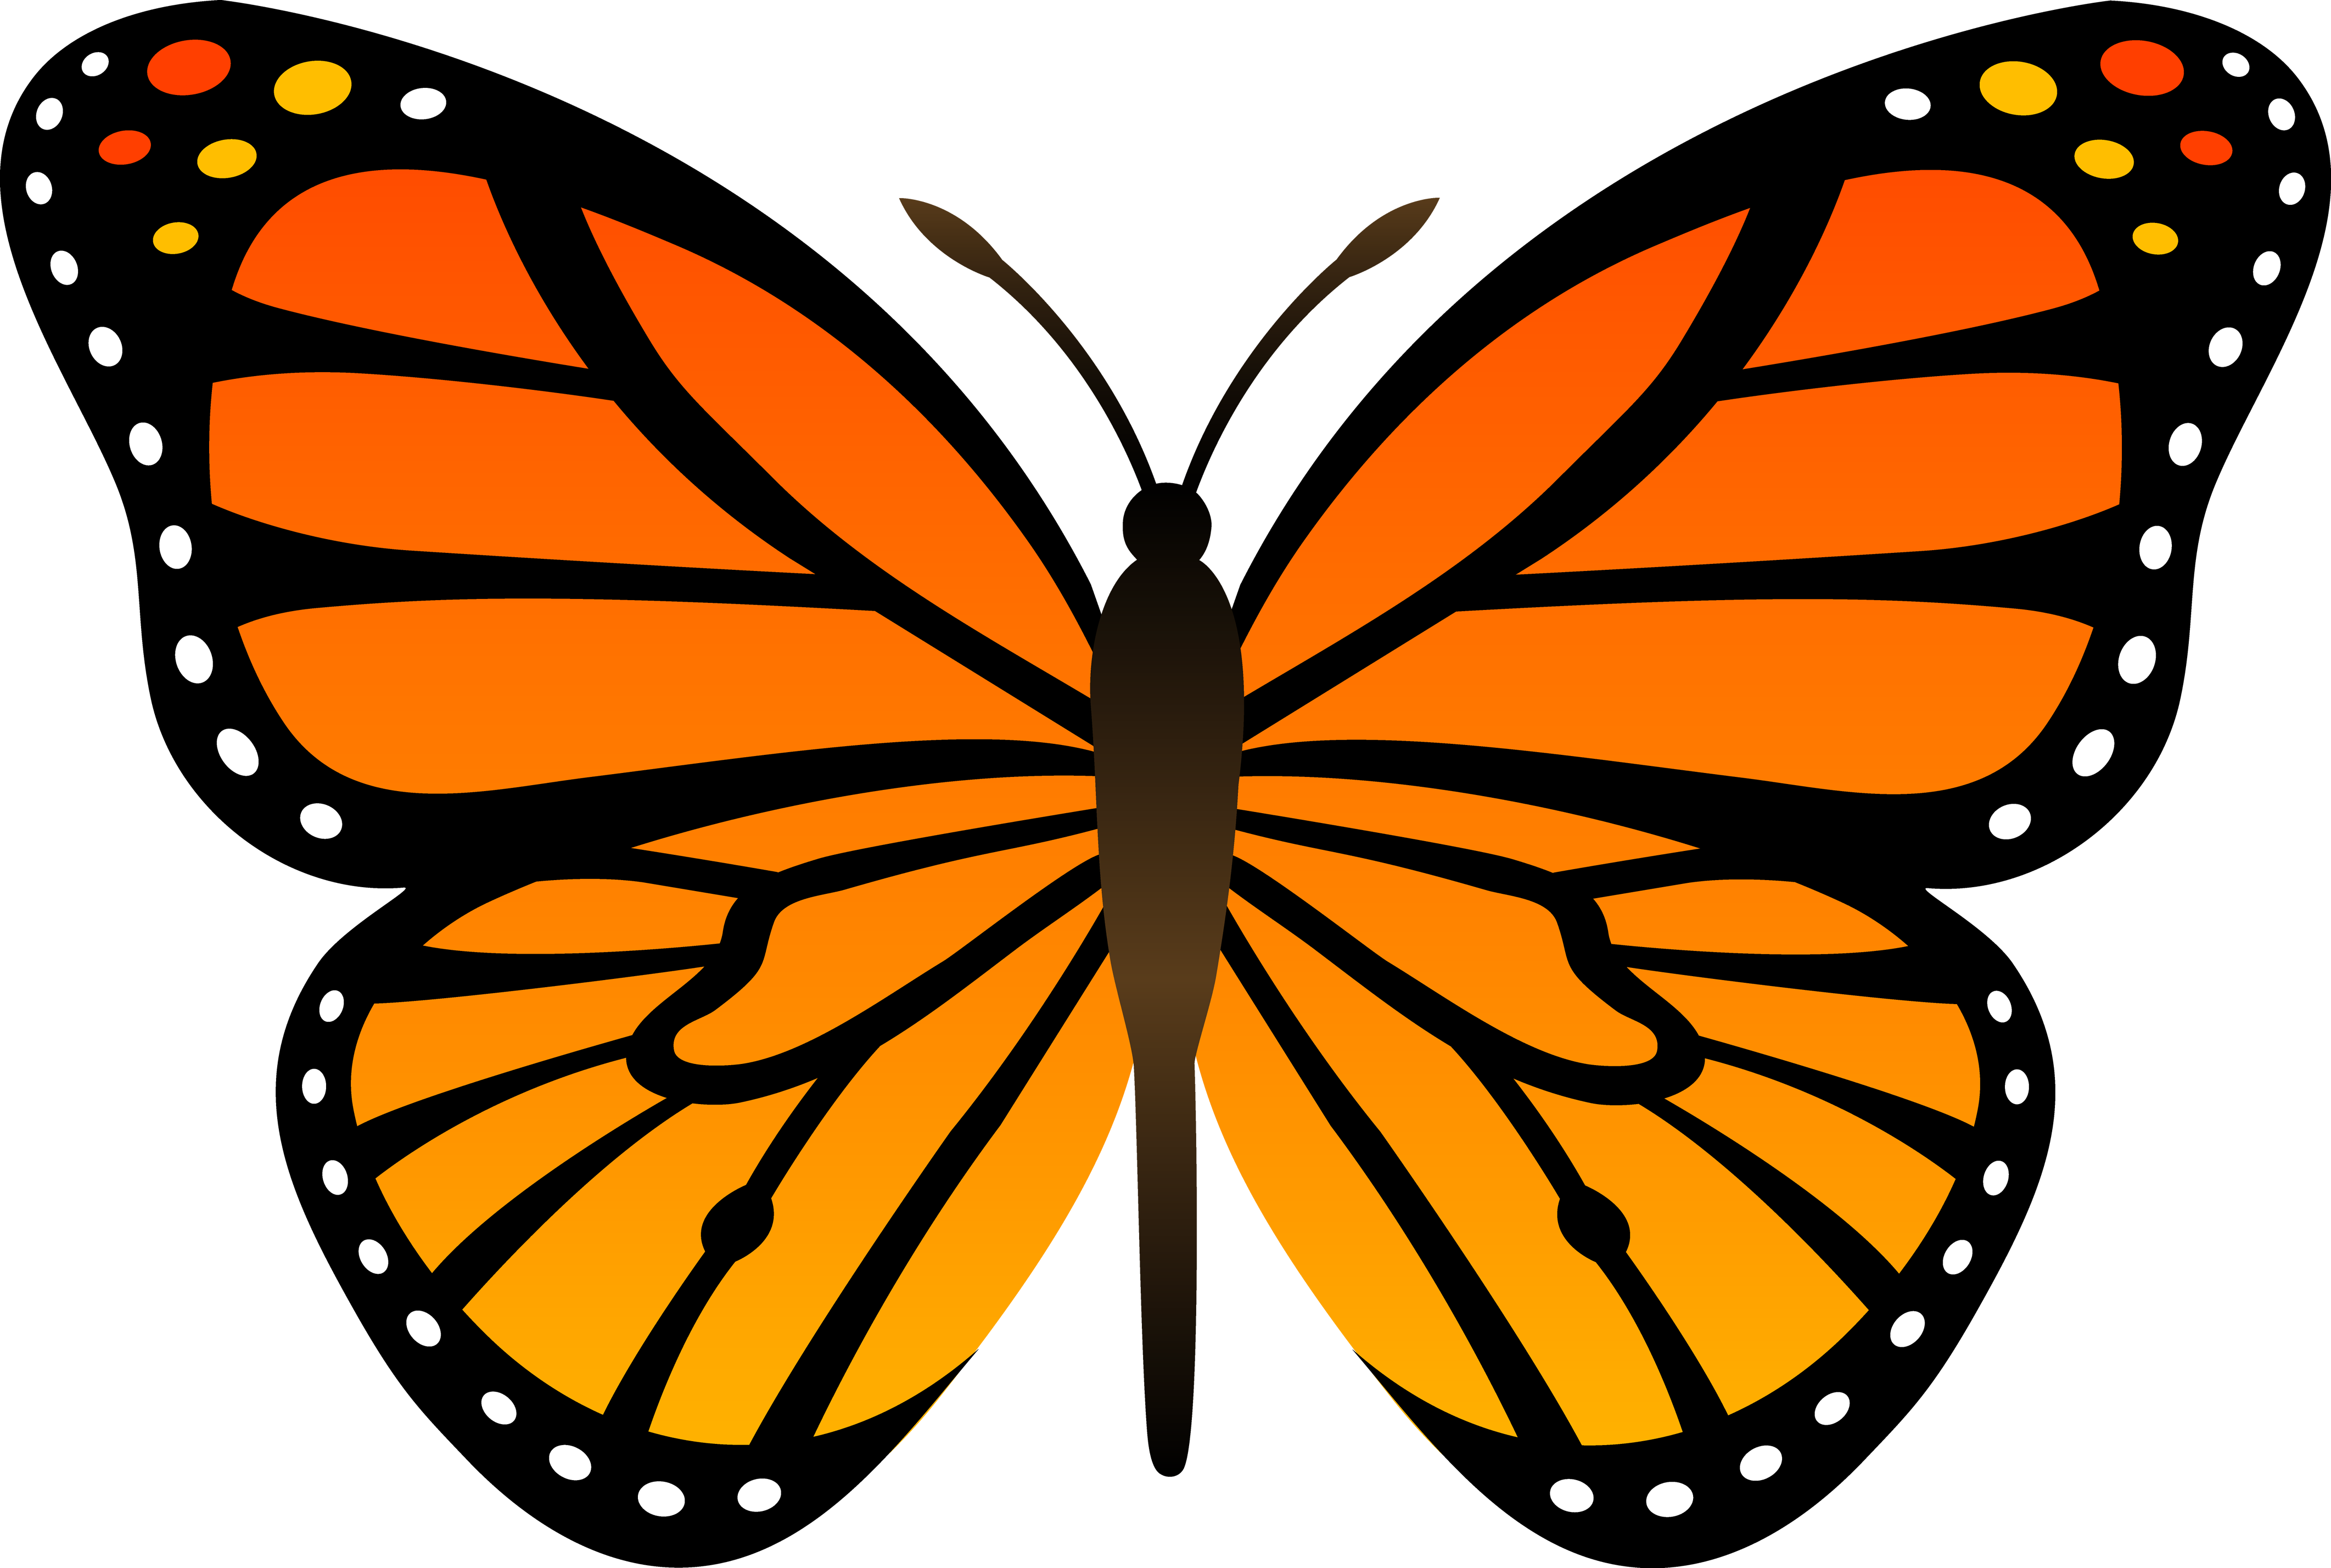 Orange Butterfly PNG Image, Butterflies Free Download - Butterfly HD PNG